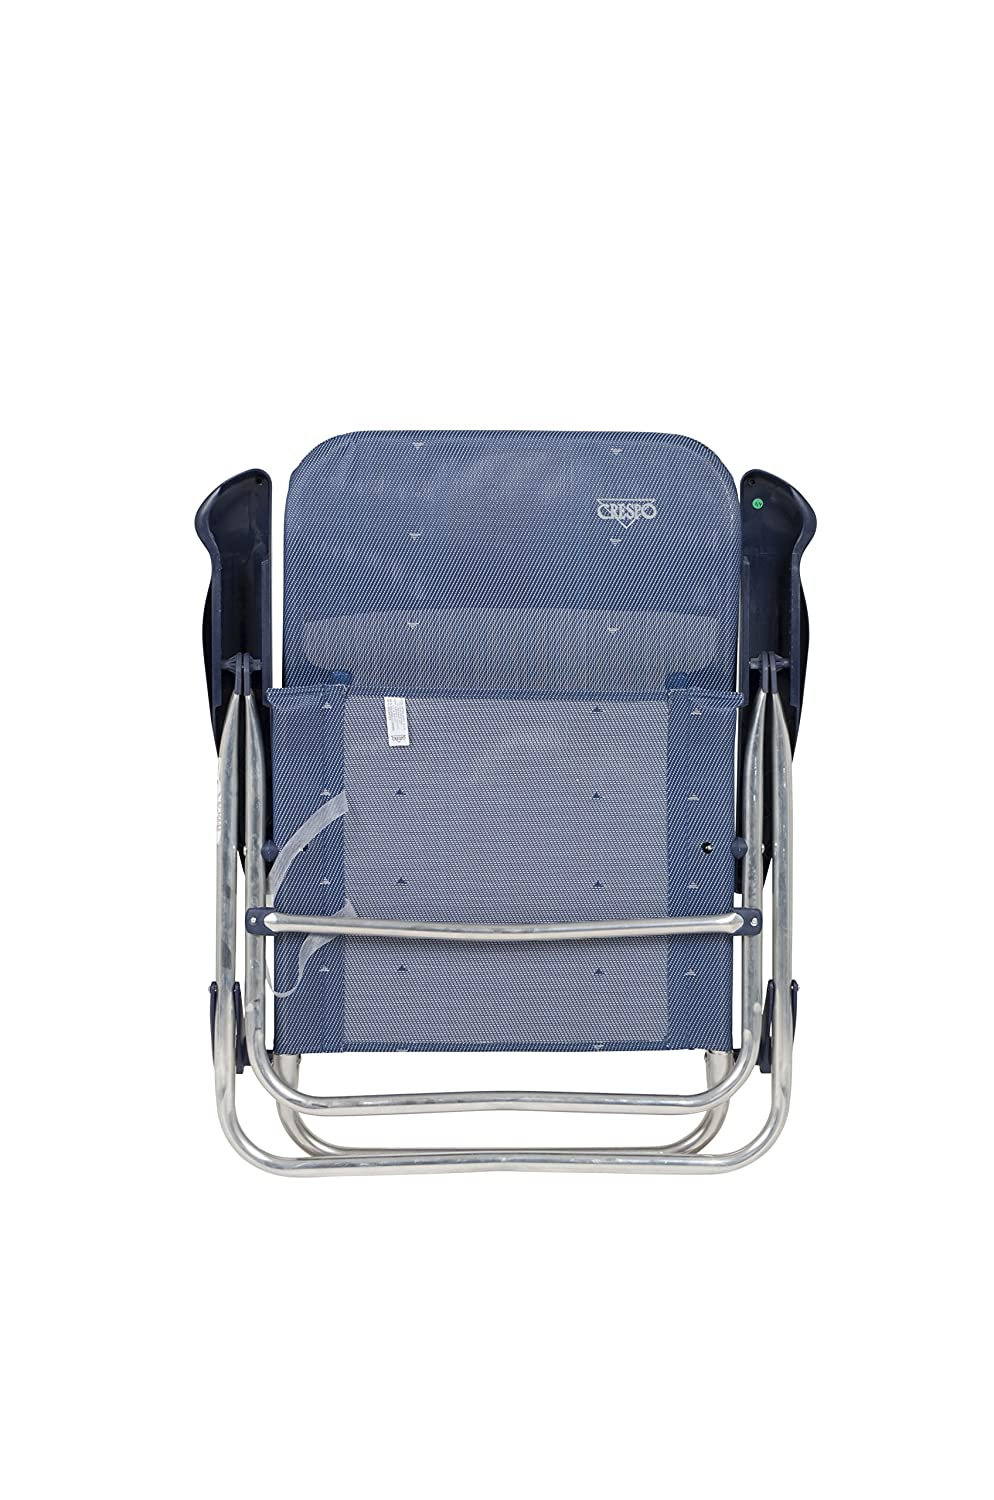 Amazon.com: Crespo - Beach Chair - AL-205 - Dark Blue (41): Automotive